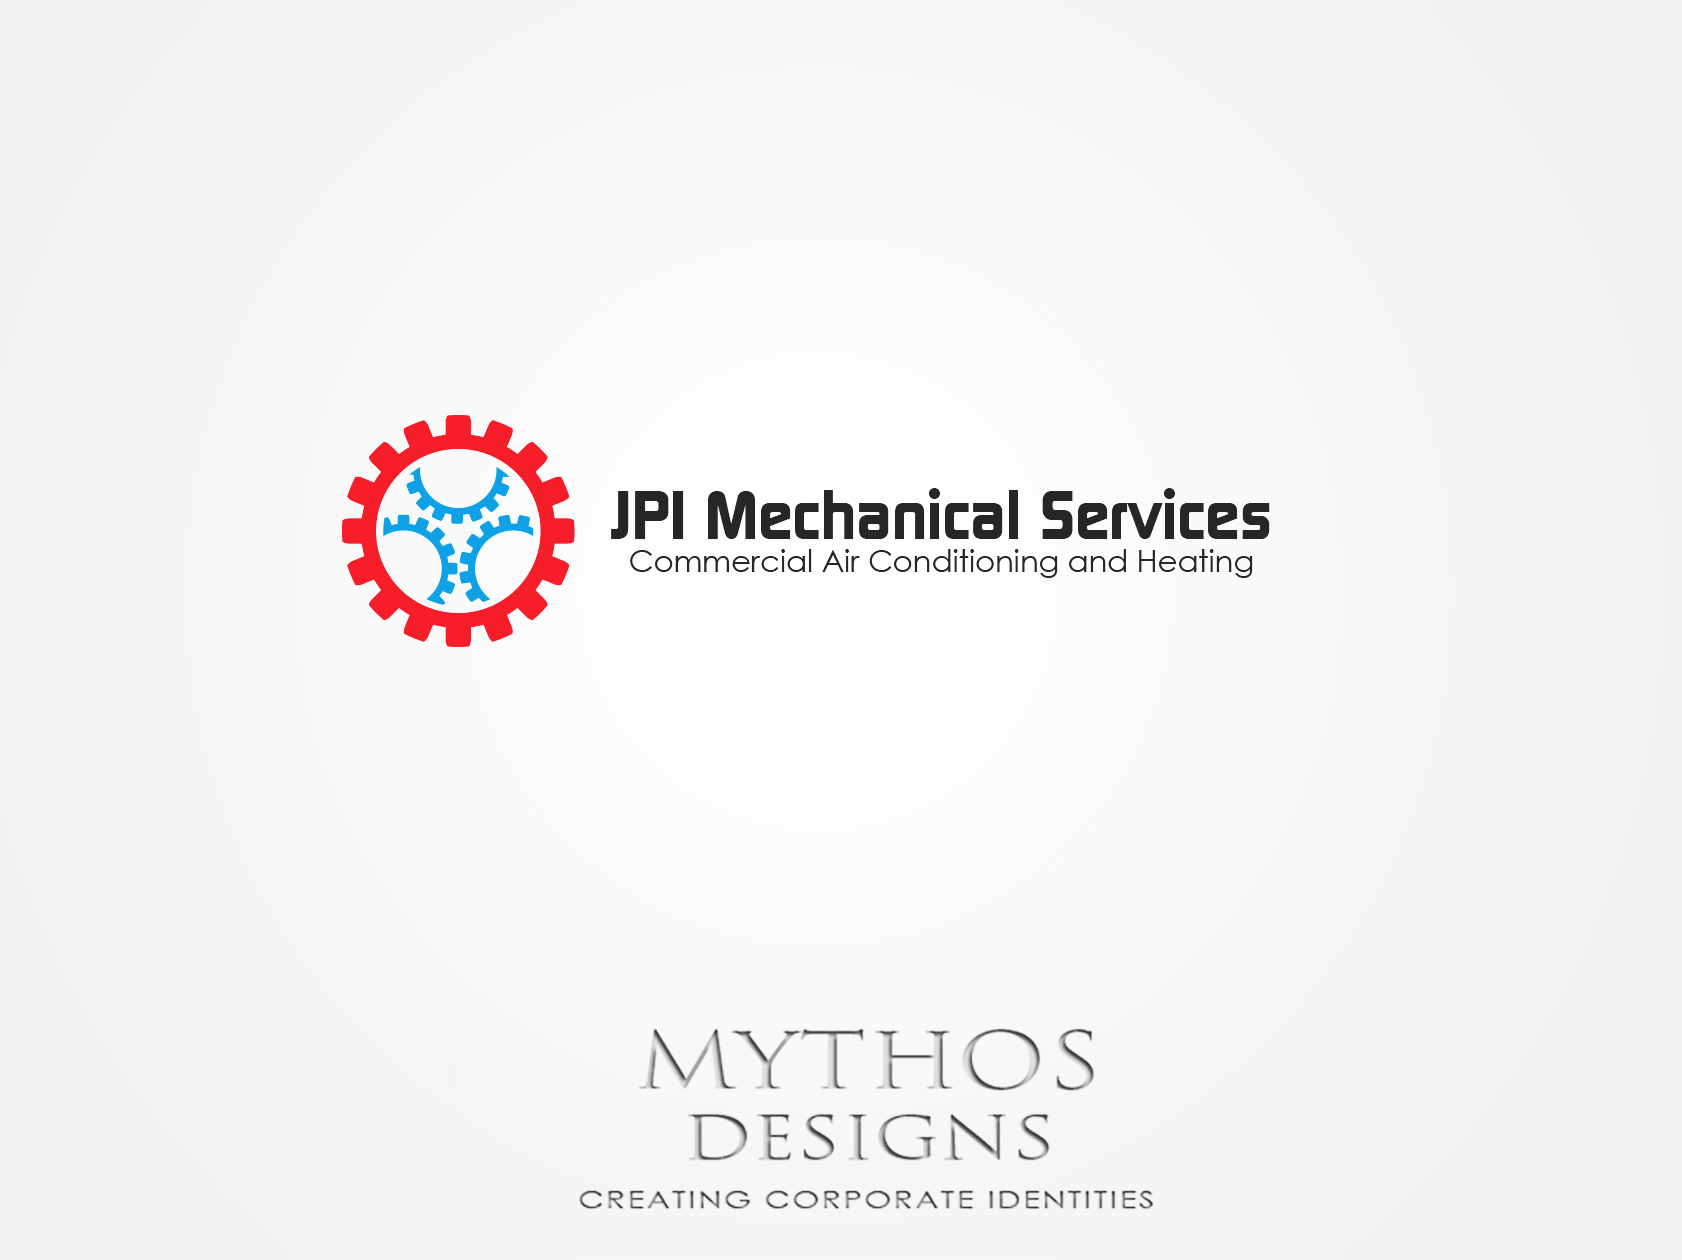 Logo Design by Mythos Designs - Entry No. 76 in the Logo Design Contest Inspiring Logo Design for JPI Mecanical Services.